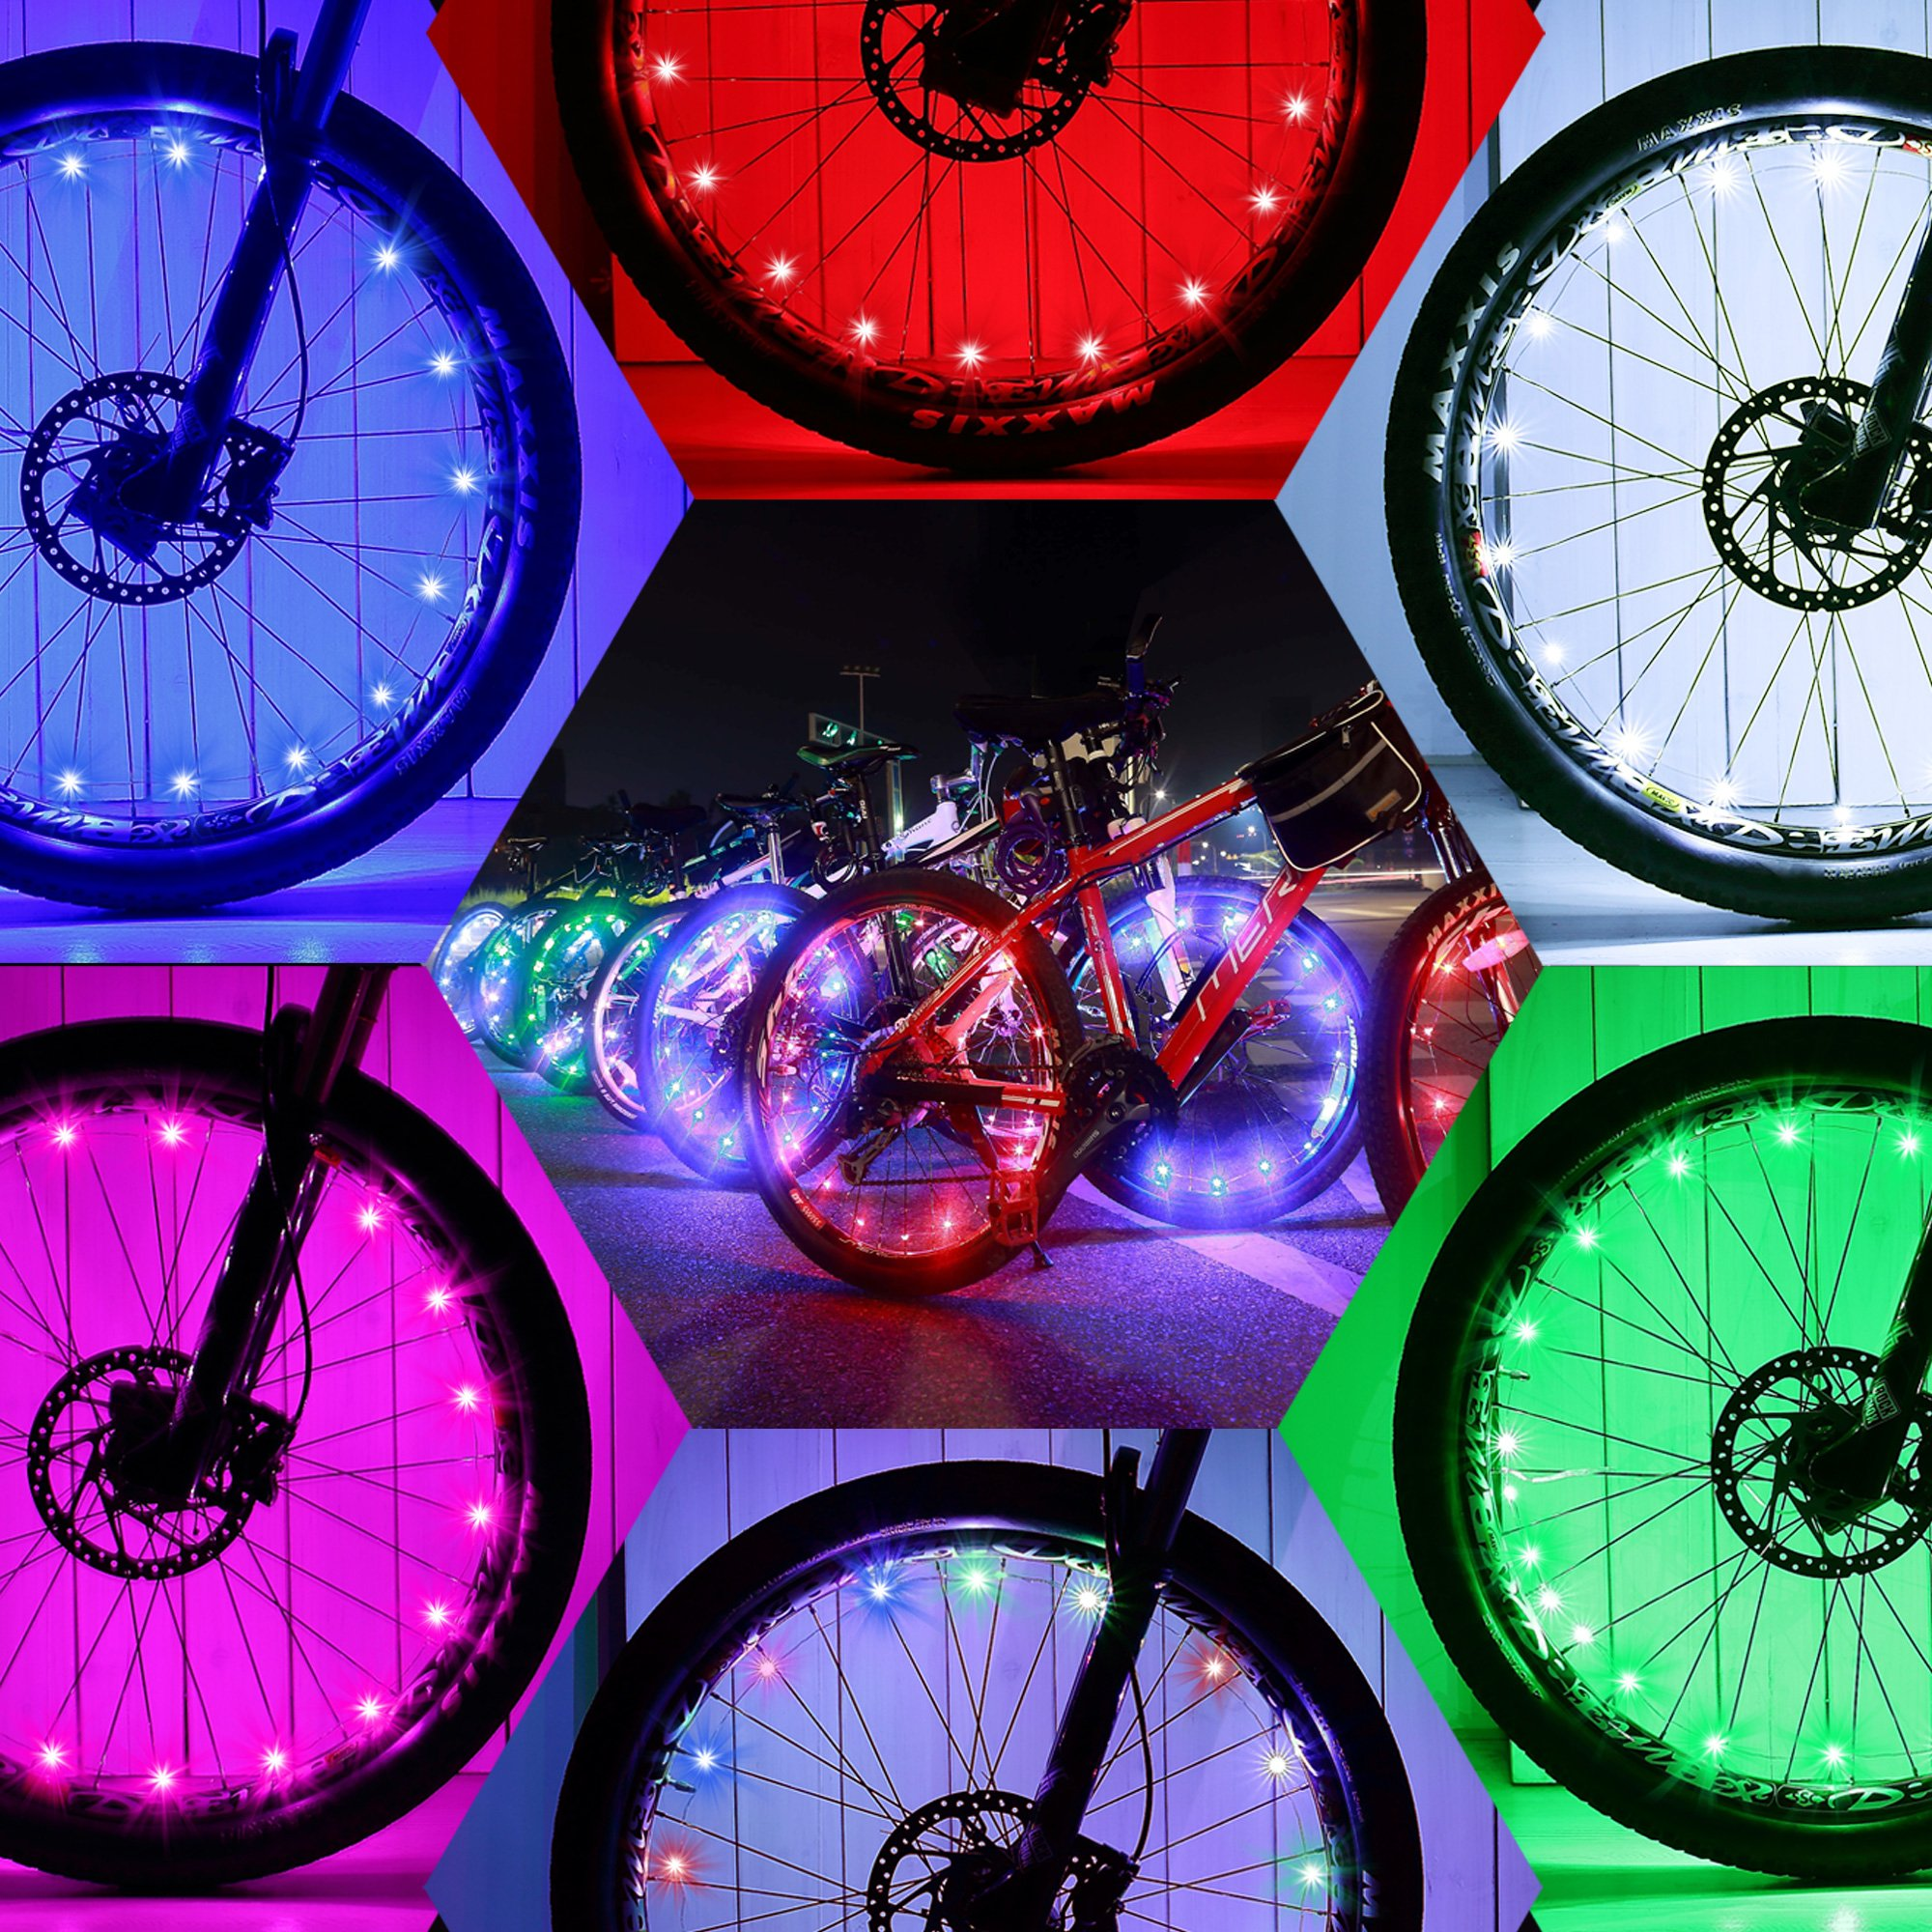 DAWAY Waterproof Bike Spoke Lights - A01 Bright Led Bicycle Light (1 Tire, Green), Safety Wheel Lights, Cool Birthday Presents for Kids, Popular Black Friday & Cyber Monday Deal, 1 Year Warranty